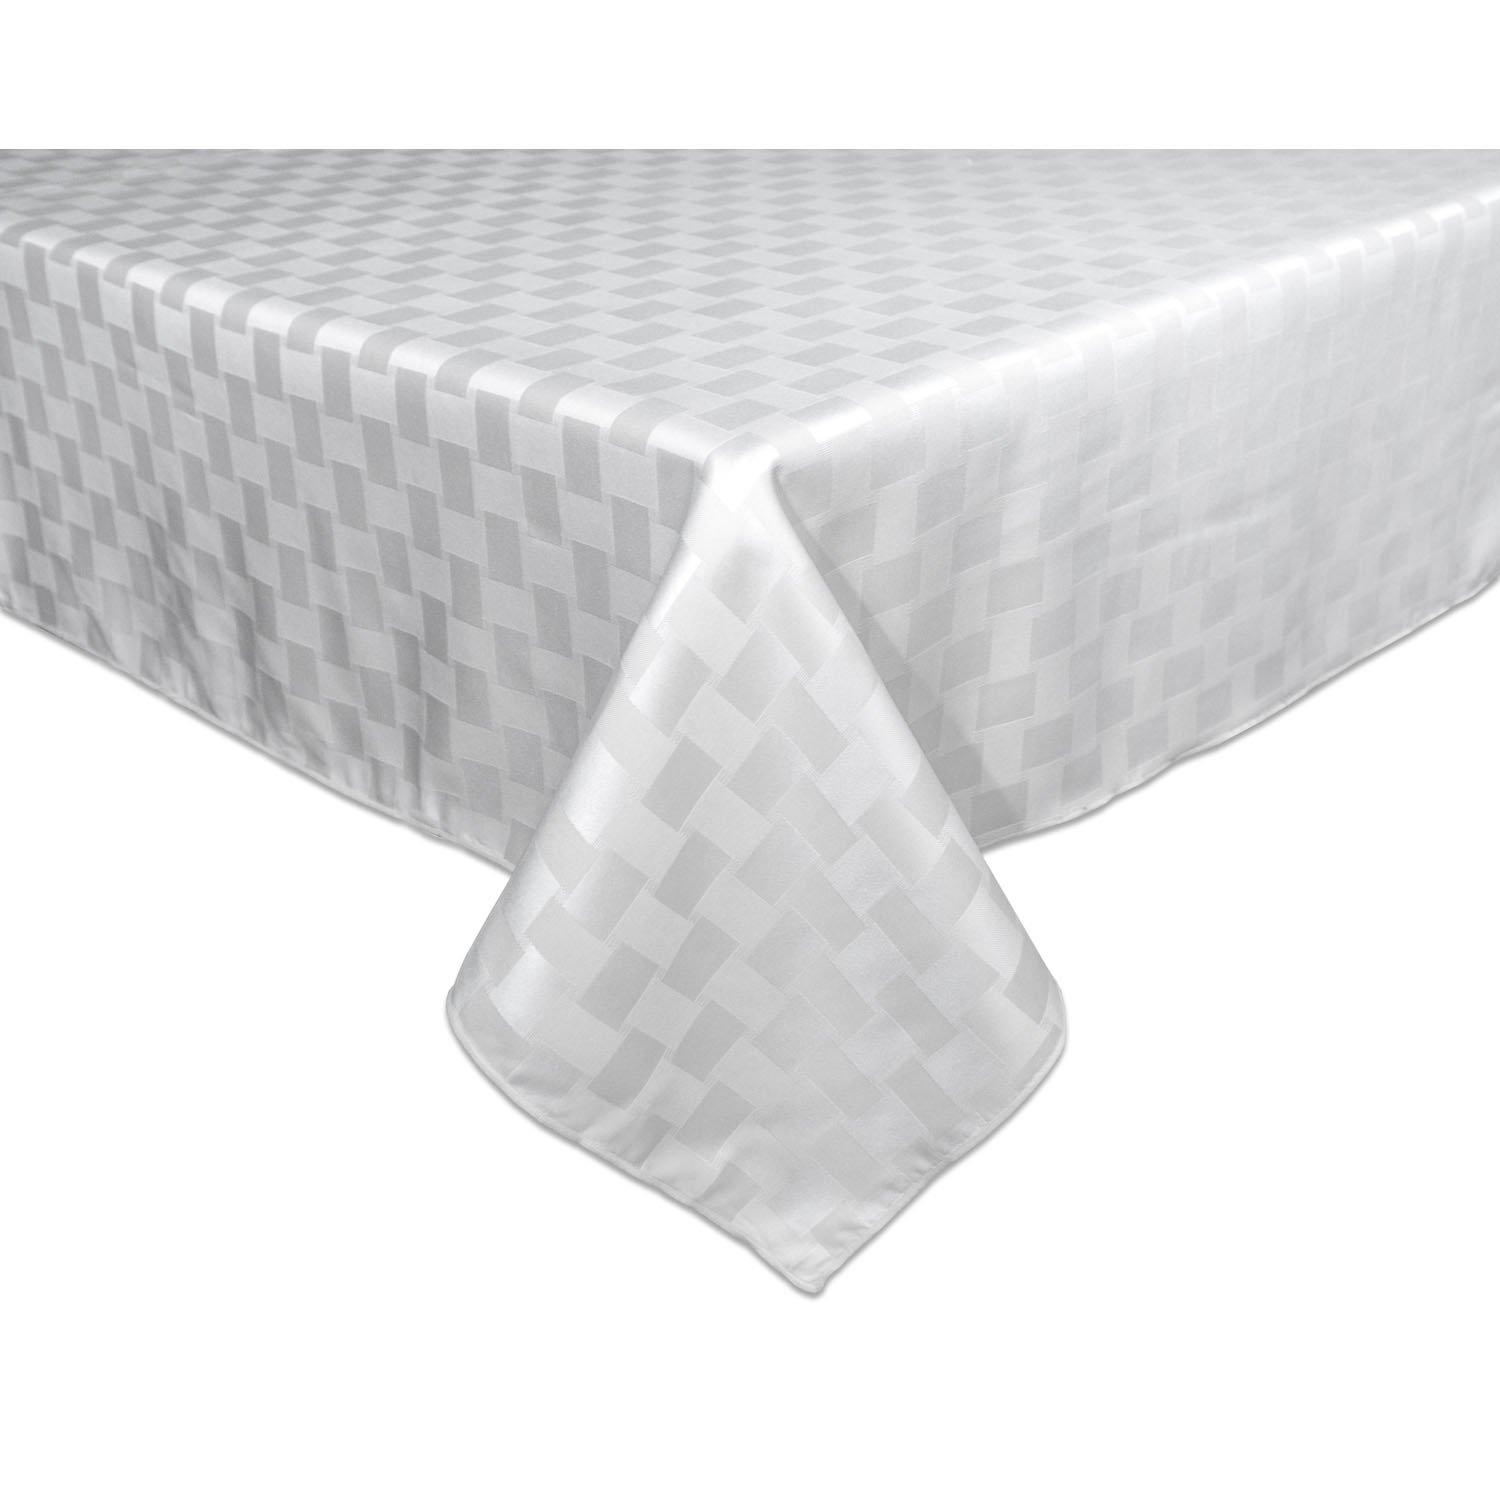 Amazon.com: Bardwil Reflections Spill Proof Oblong / Rectangle Tablecloth,  60 Inch X 120 Inch, White: Home U0026 Kitchen